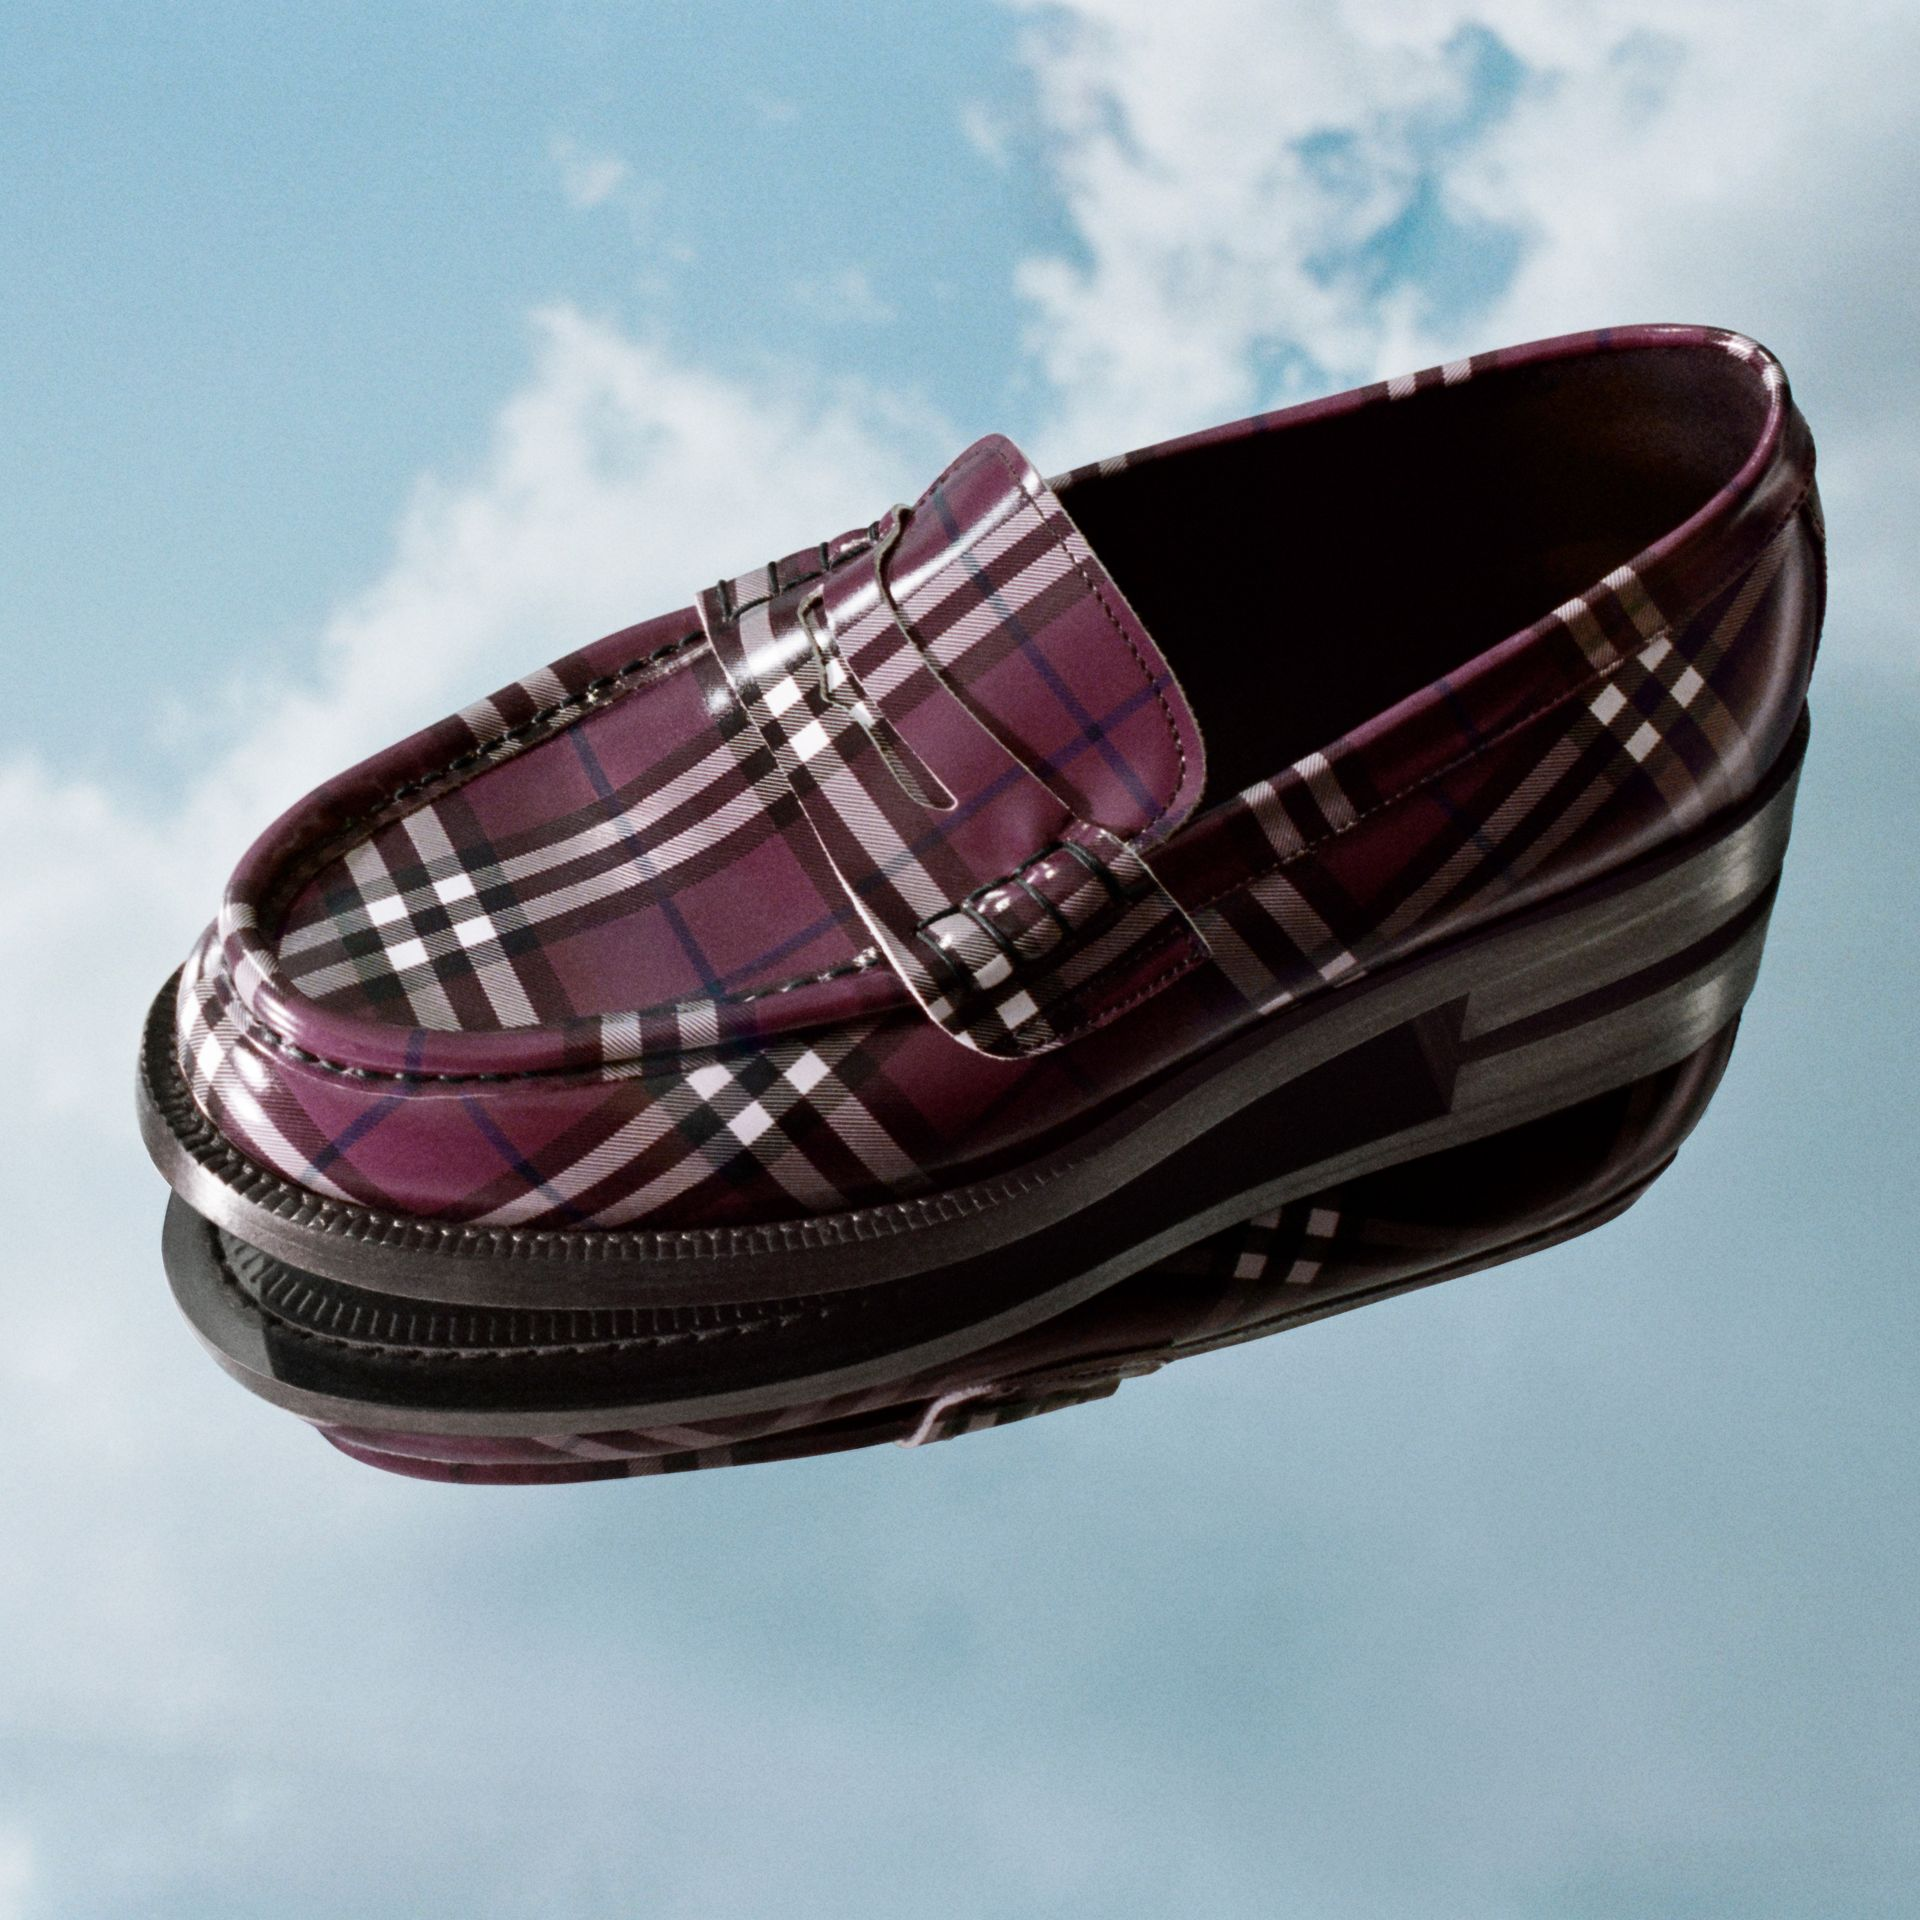 Gosha x Burberry Check Leather Loafers in Claret - Men | Burberry - gallery image 1